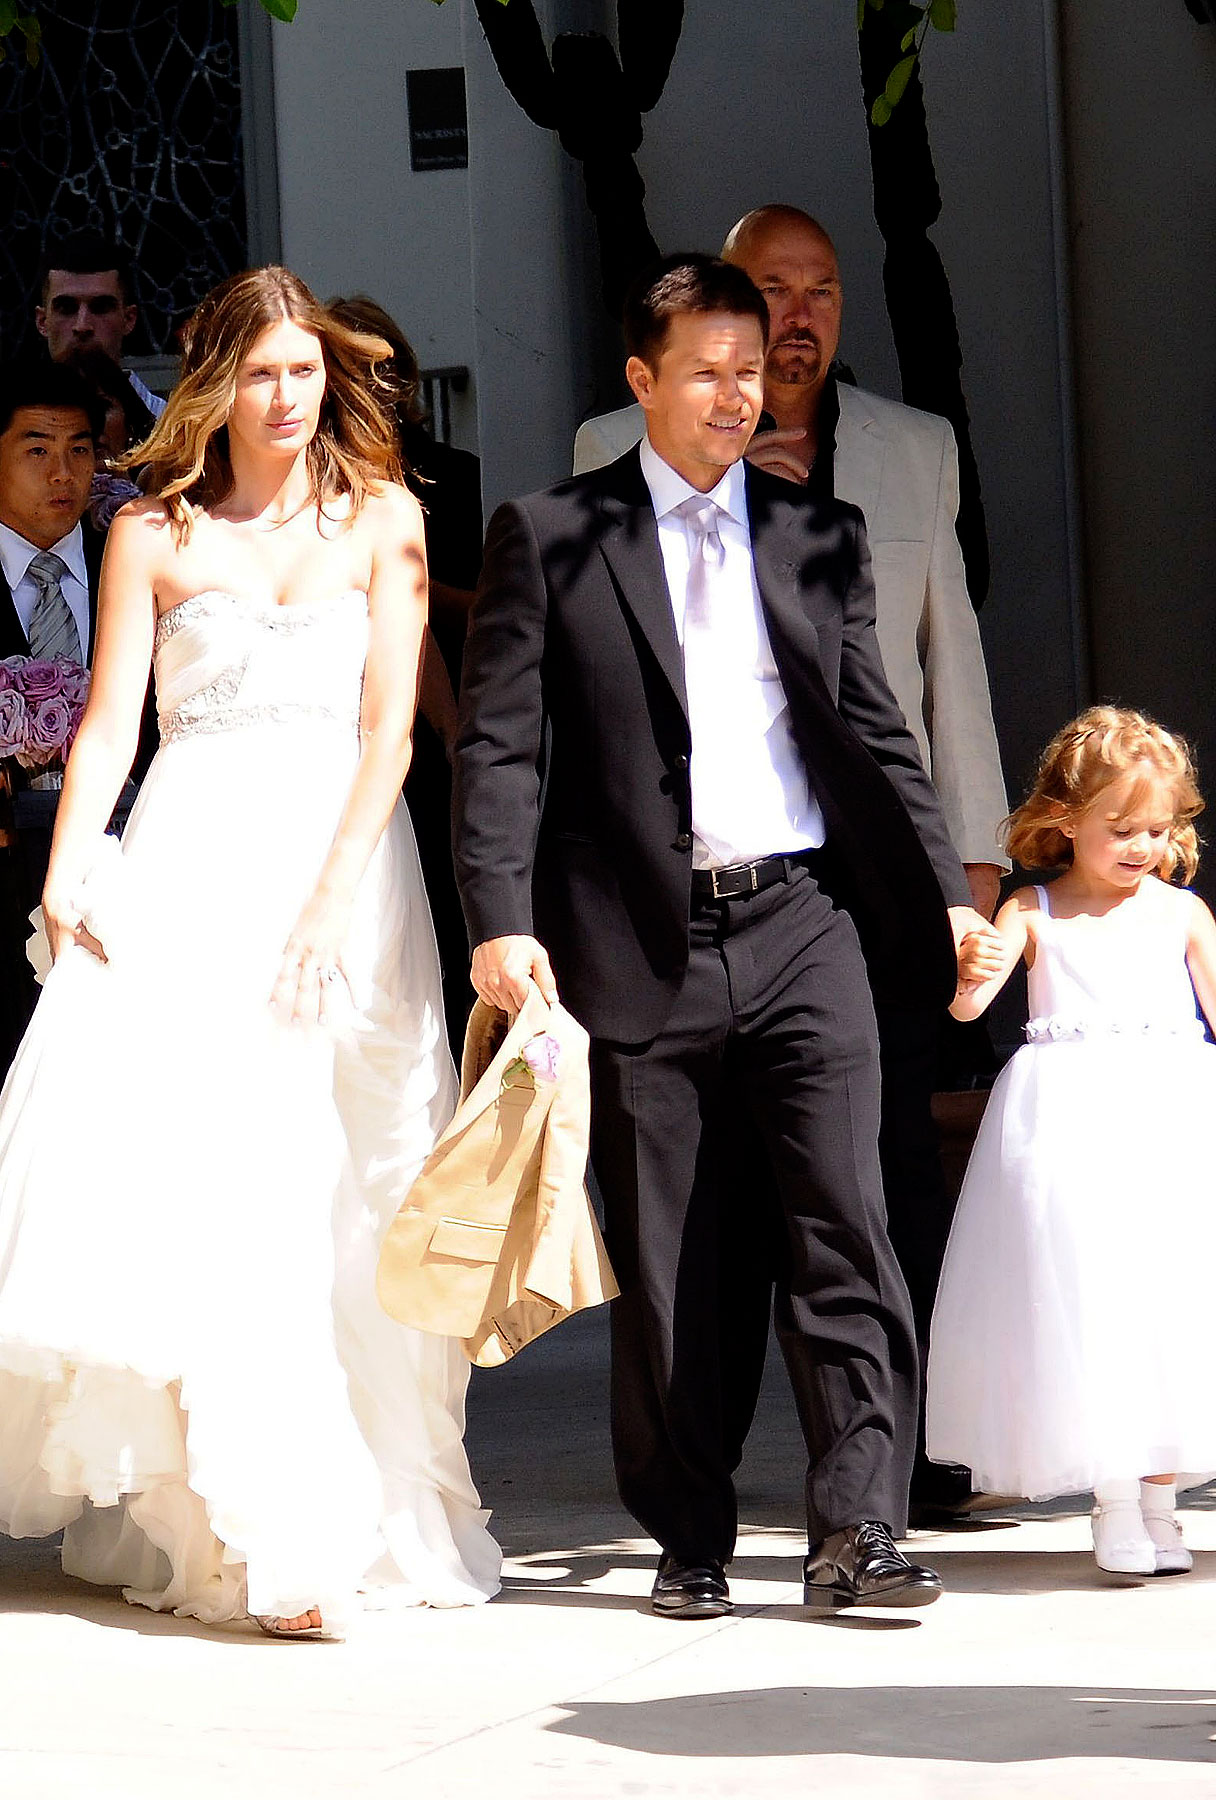 PHOTO GALLERY: Mark Wahlberg Gets Married